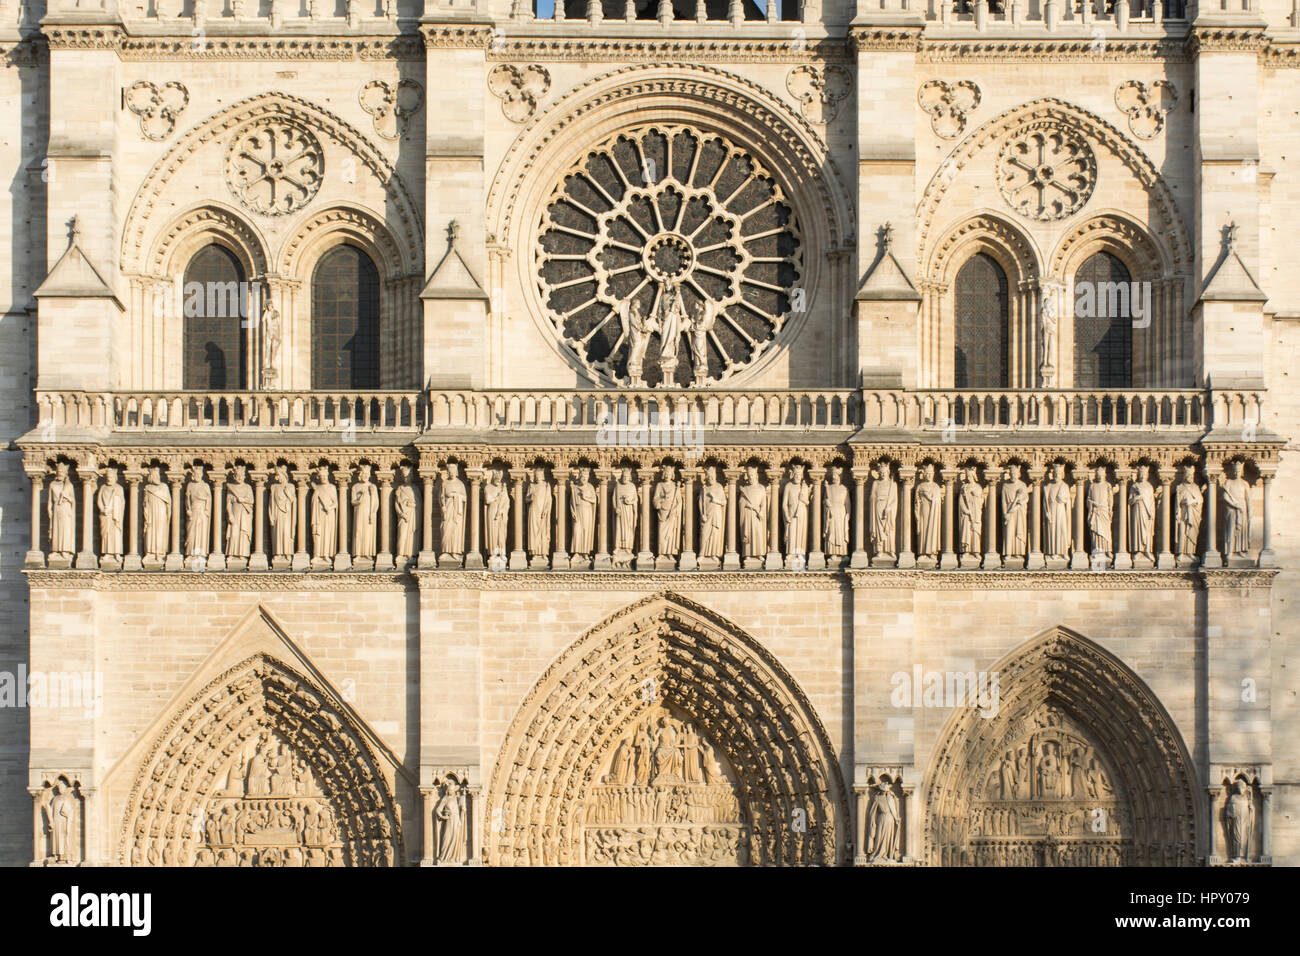 Notre Dame Cathedral, detail of the front facade. Paris, France Stock Photo